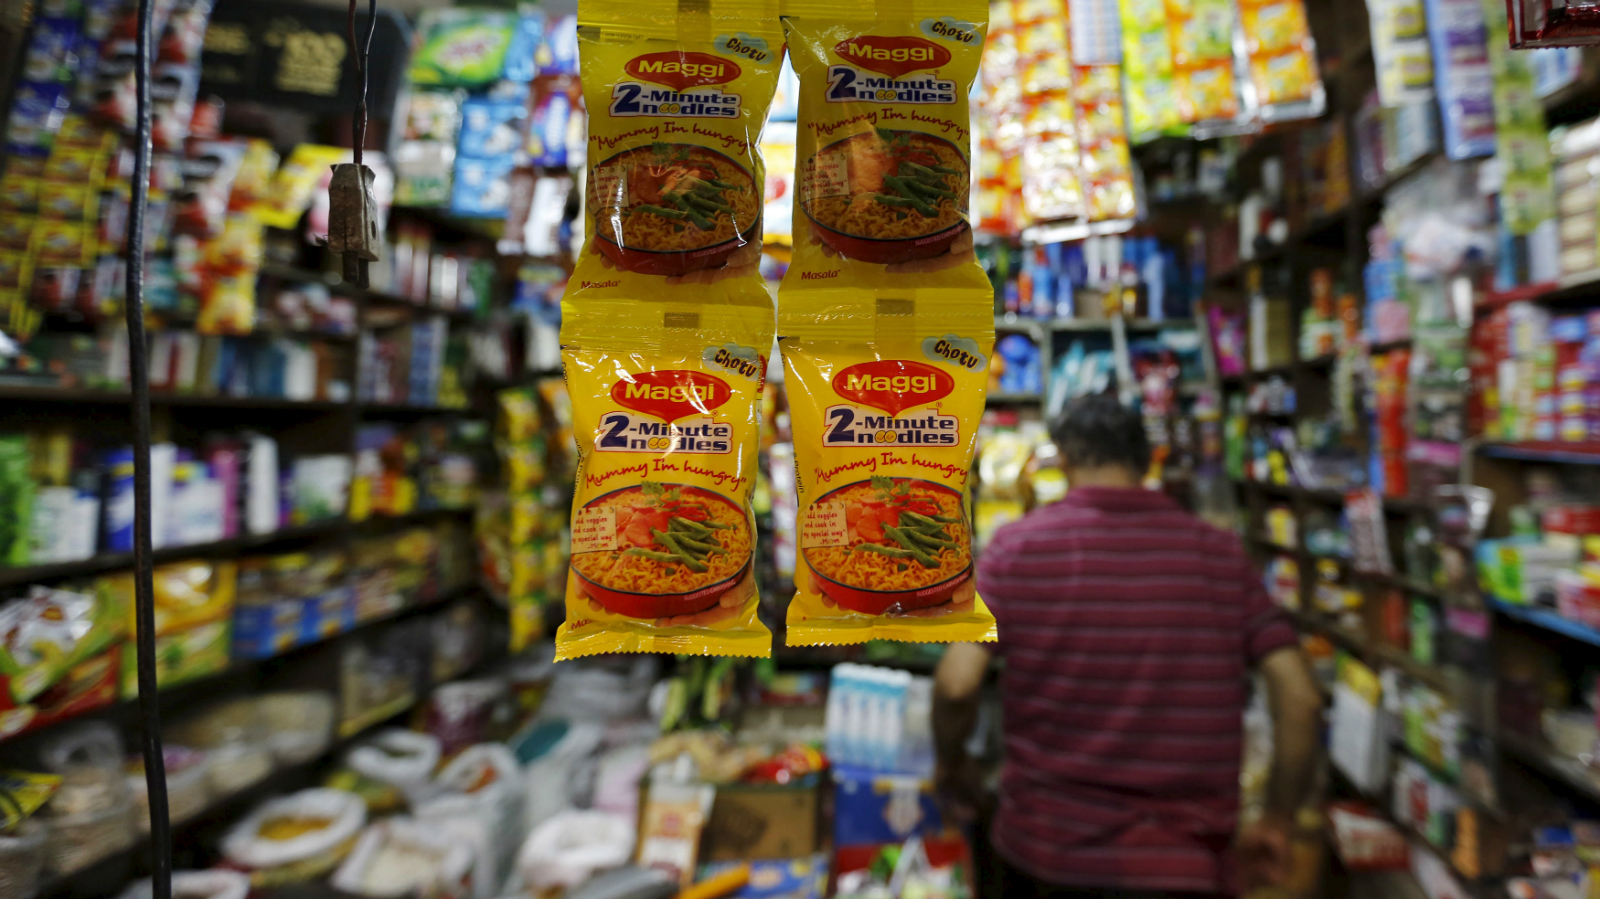 Packets of Maggi instant noodles are seen on display at a grocery store in Ahmedabad, India, June 3, 2015. India's food minister on Wednesday ordered safety checks on Nestle India's Maggi instant noodles after regional food inspectors said the test batches of the popular snack were found to contain dangerous levels of lead.